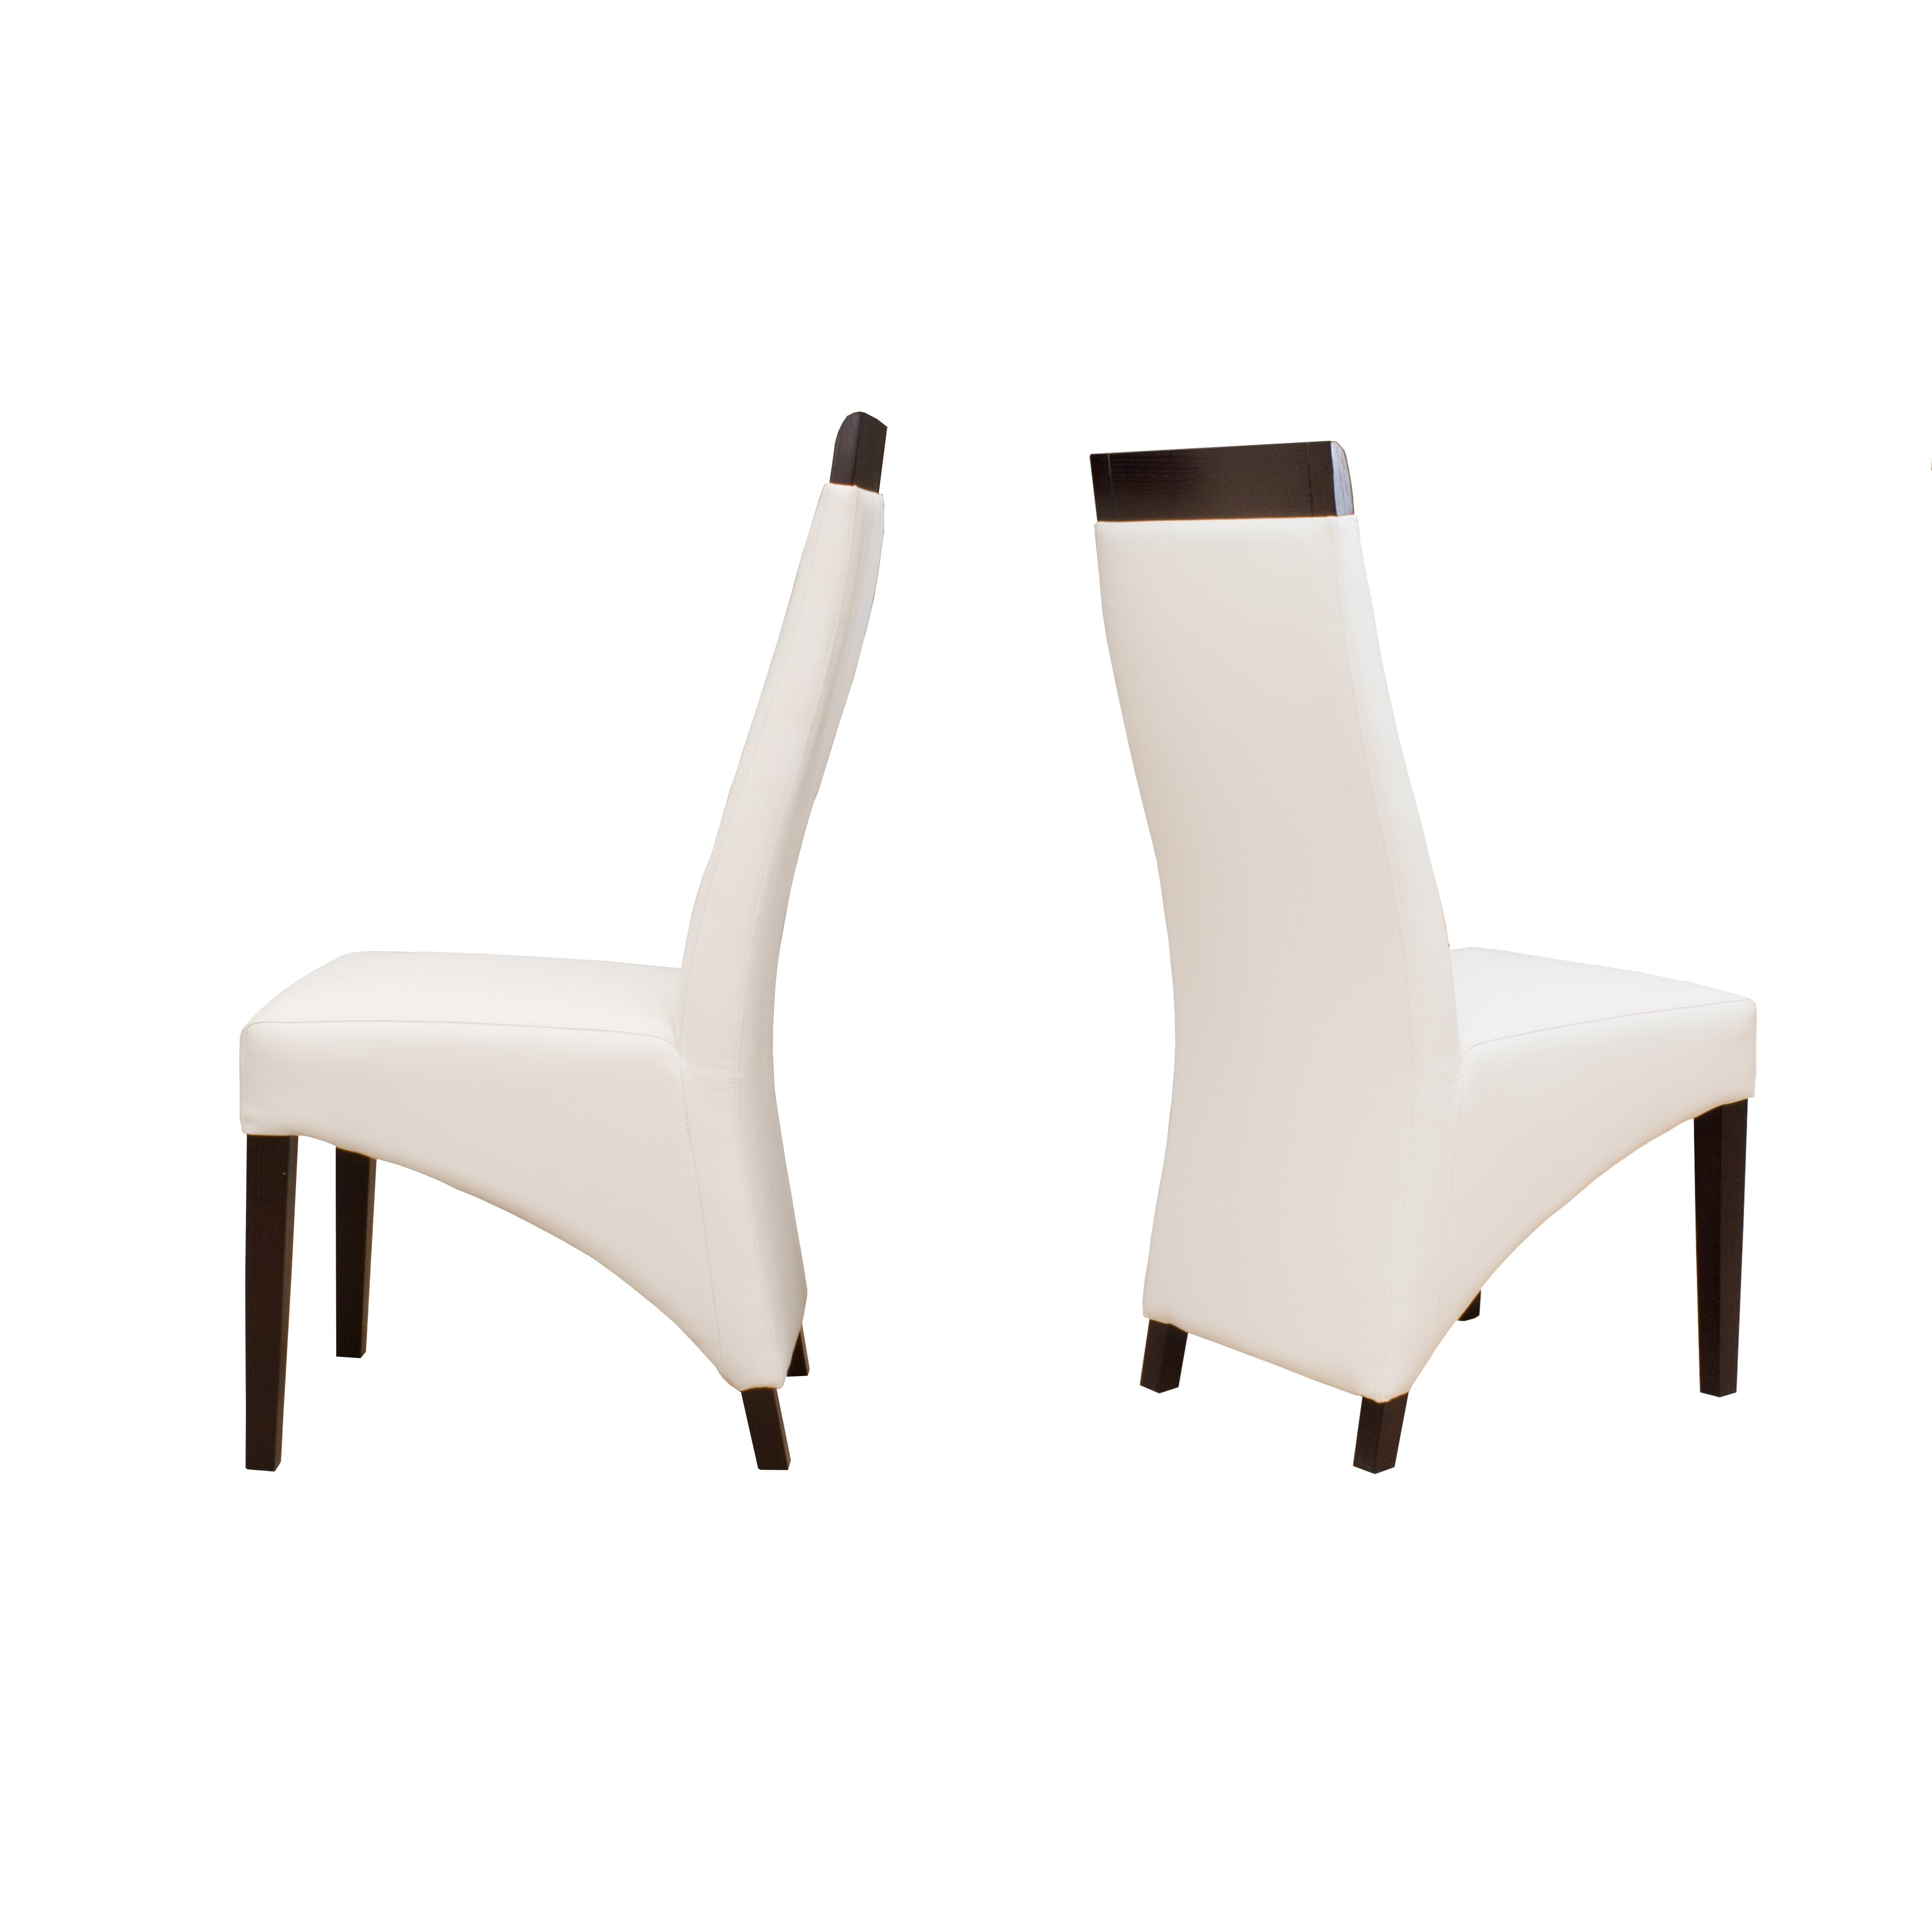 sharelle dining table -  sharelle furnishings verona parsons chair